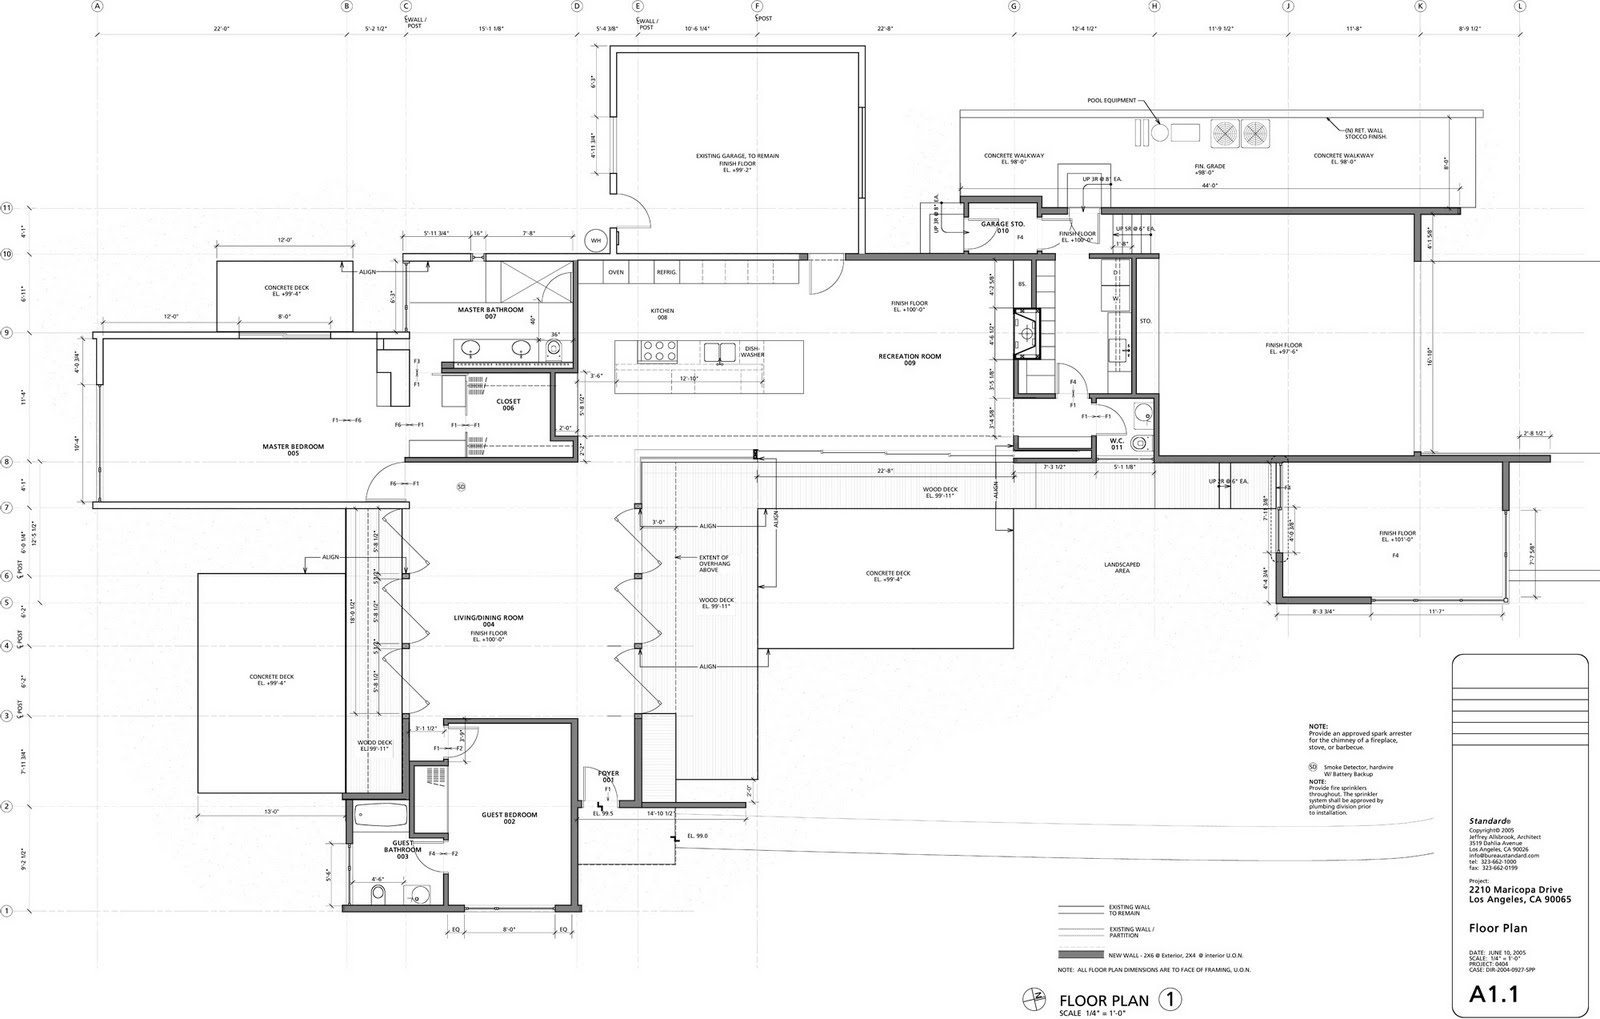 Stunning House Floor Plans With Hidden Rooms Ideas